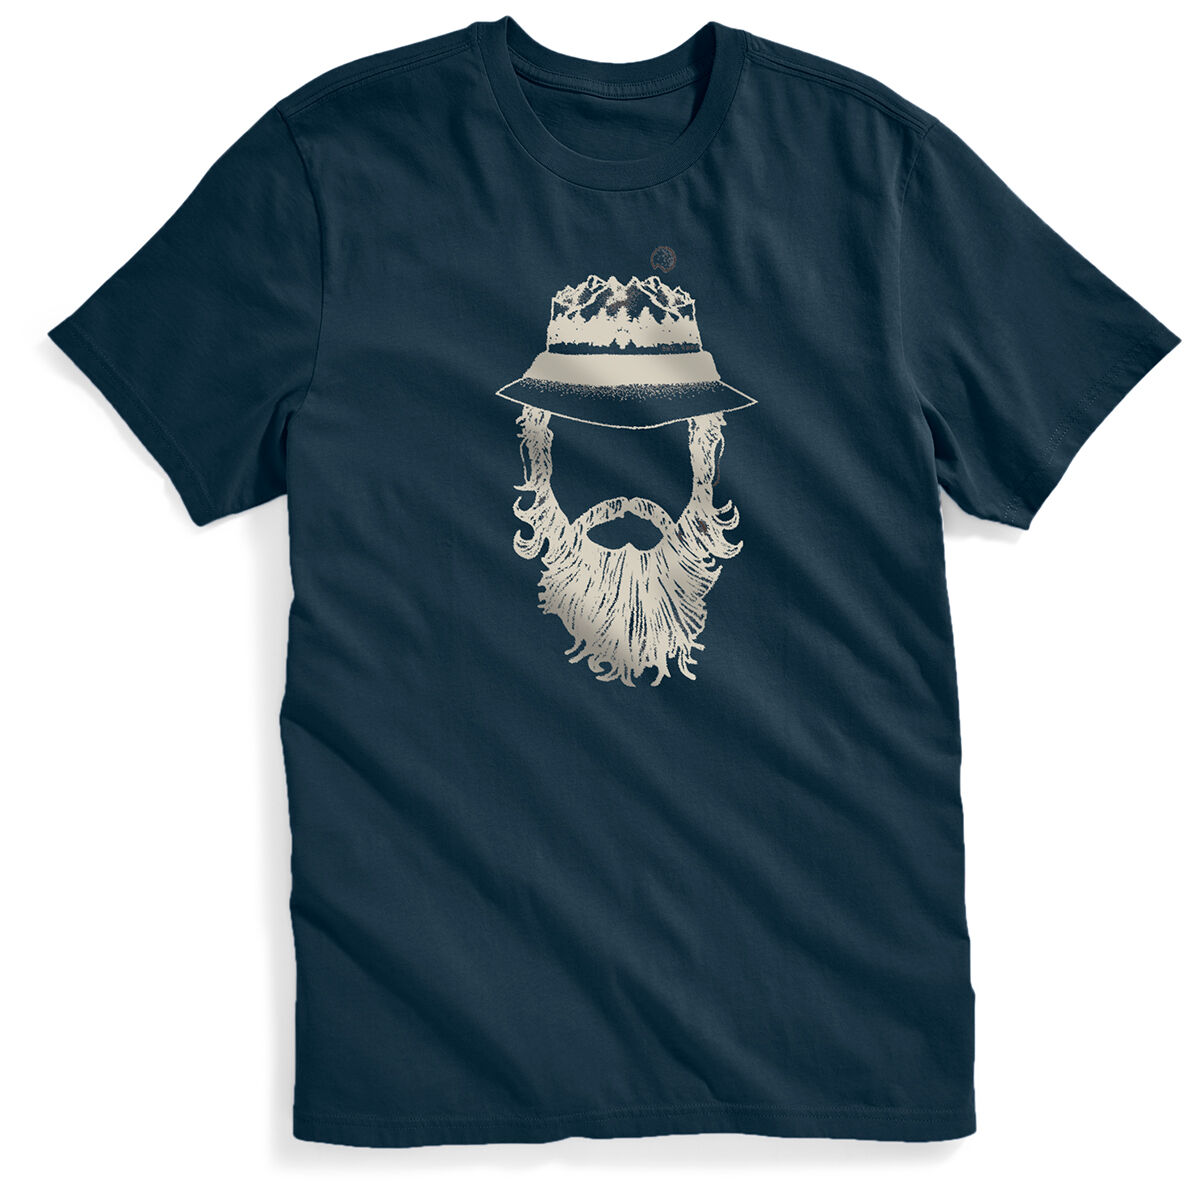 Ems Men's Mountain Man Short-Sleeve Graphic Tee - Blue, S